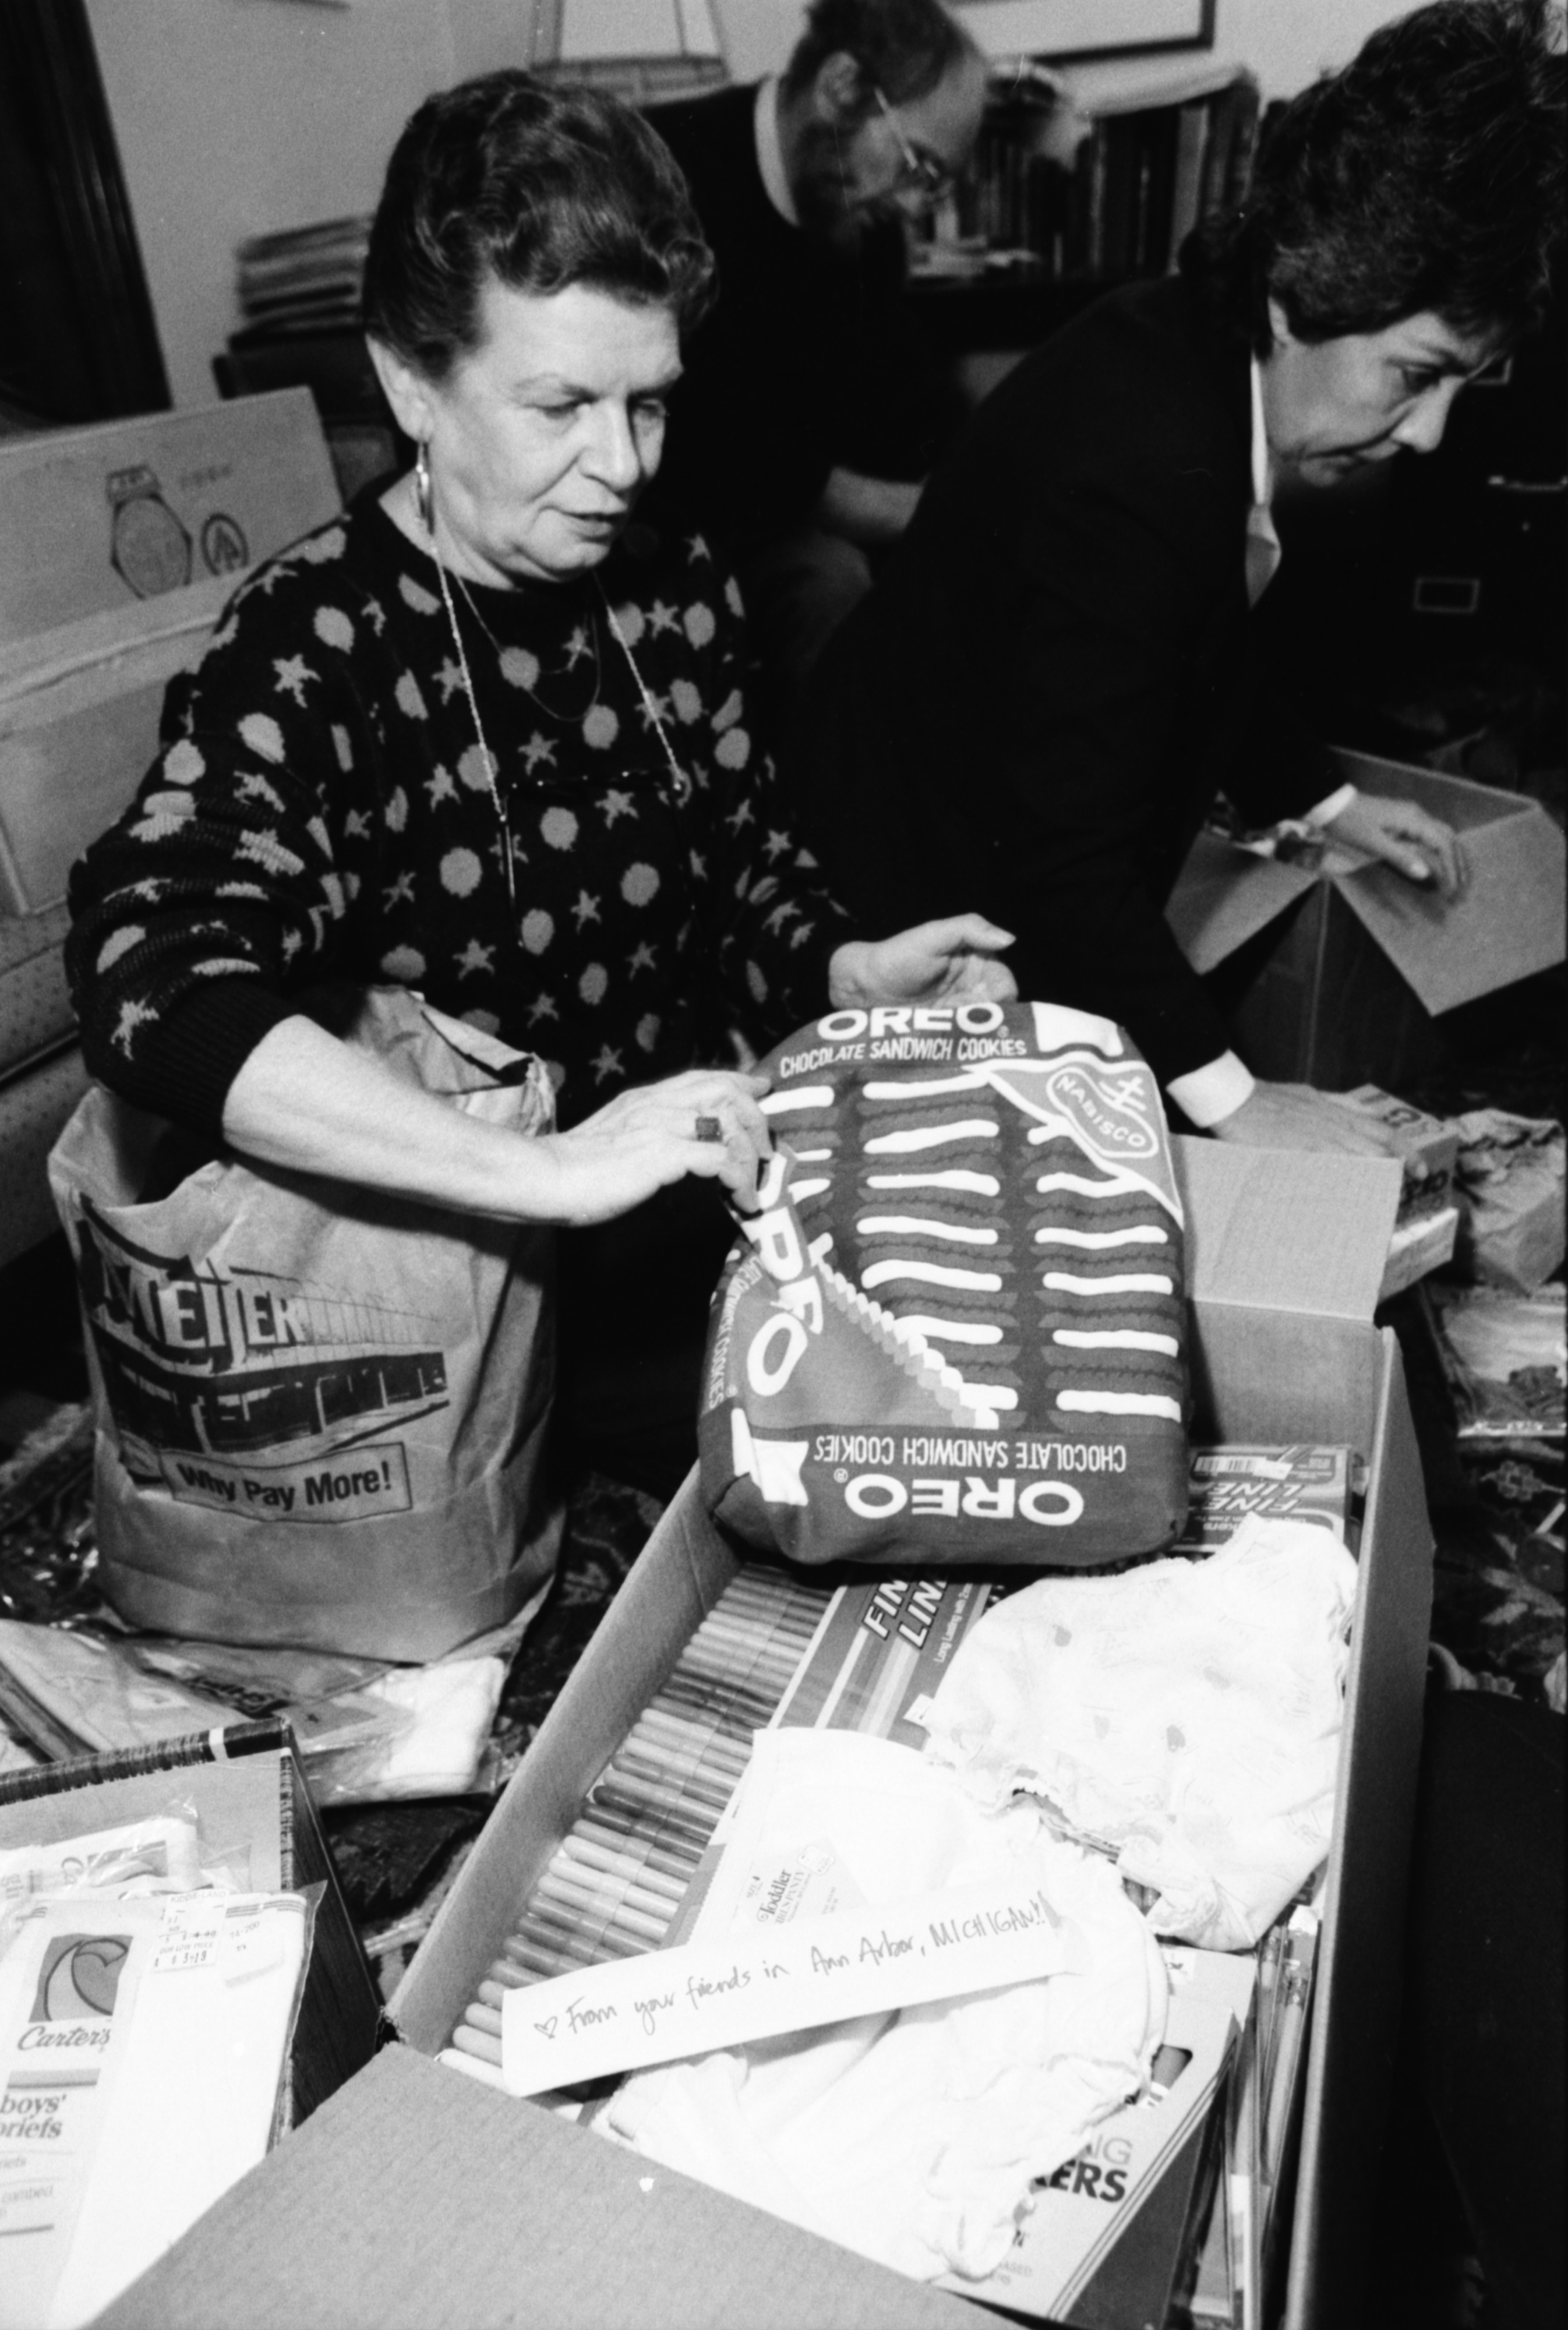 Mary Lee Pierce Wrapping Gifts for Nicaragua, October 1986 image